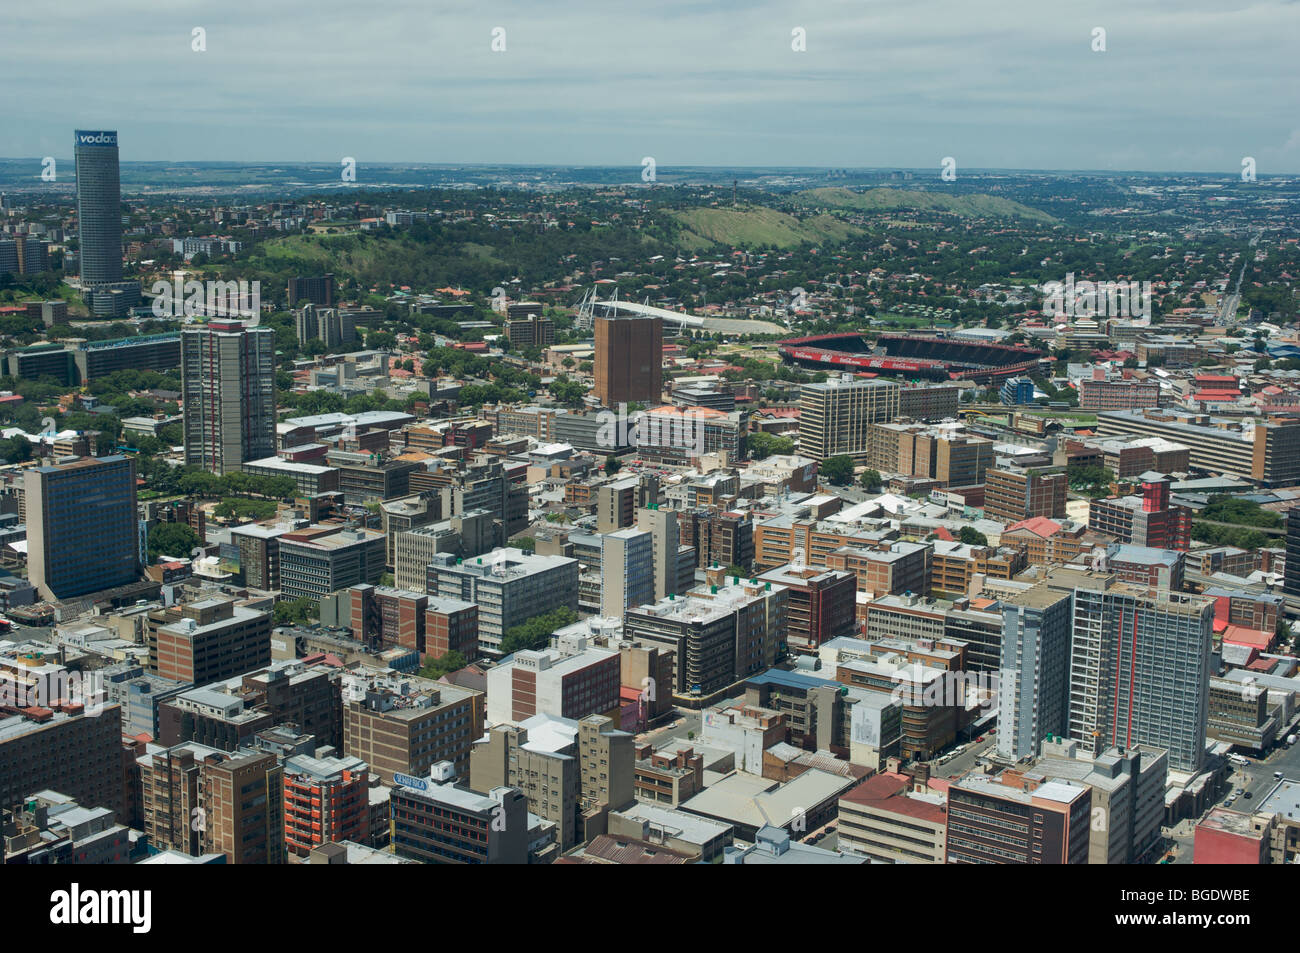 North-East view from top of Carlton Centre, Johannesburg, South Africa, of downtown Johannesburg - Stock Image